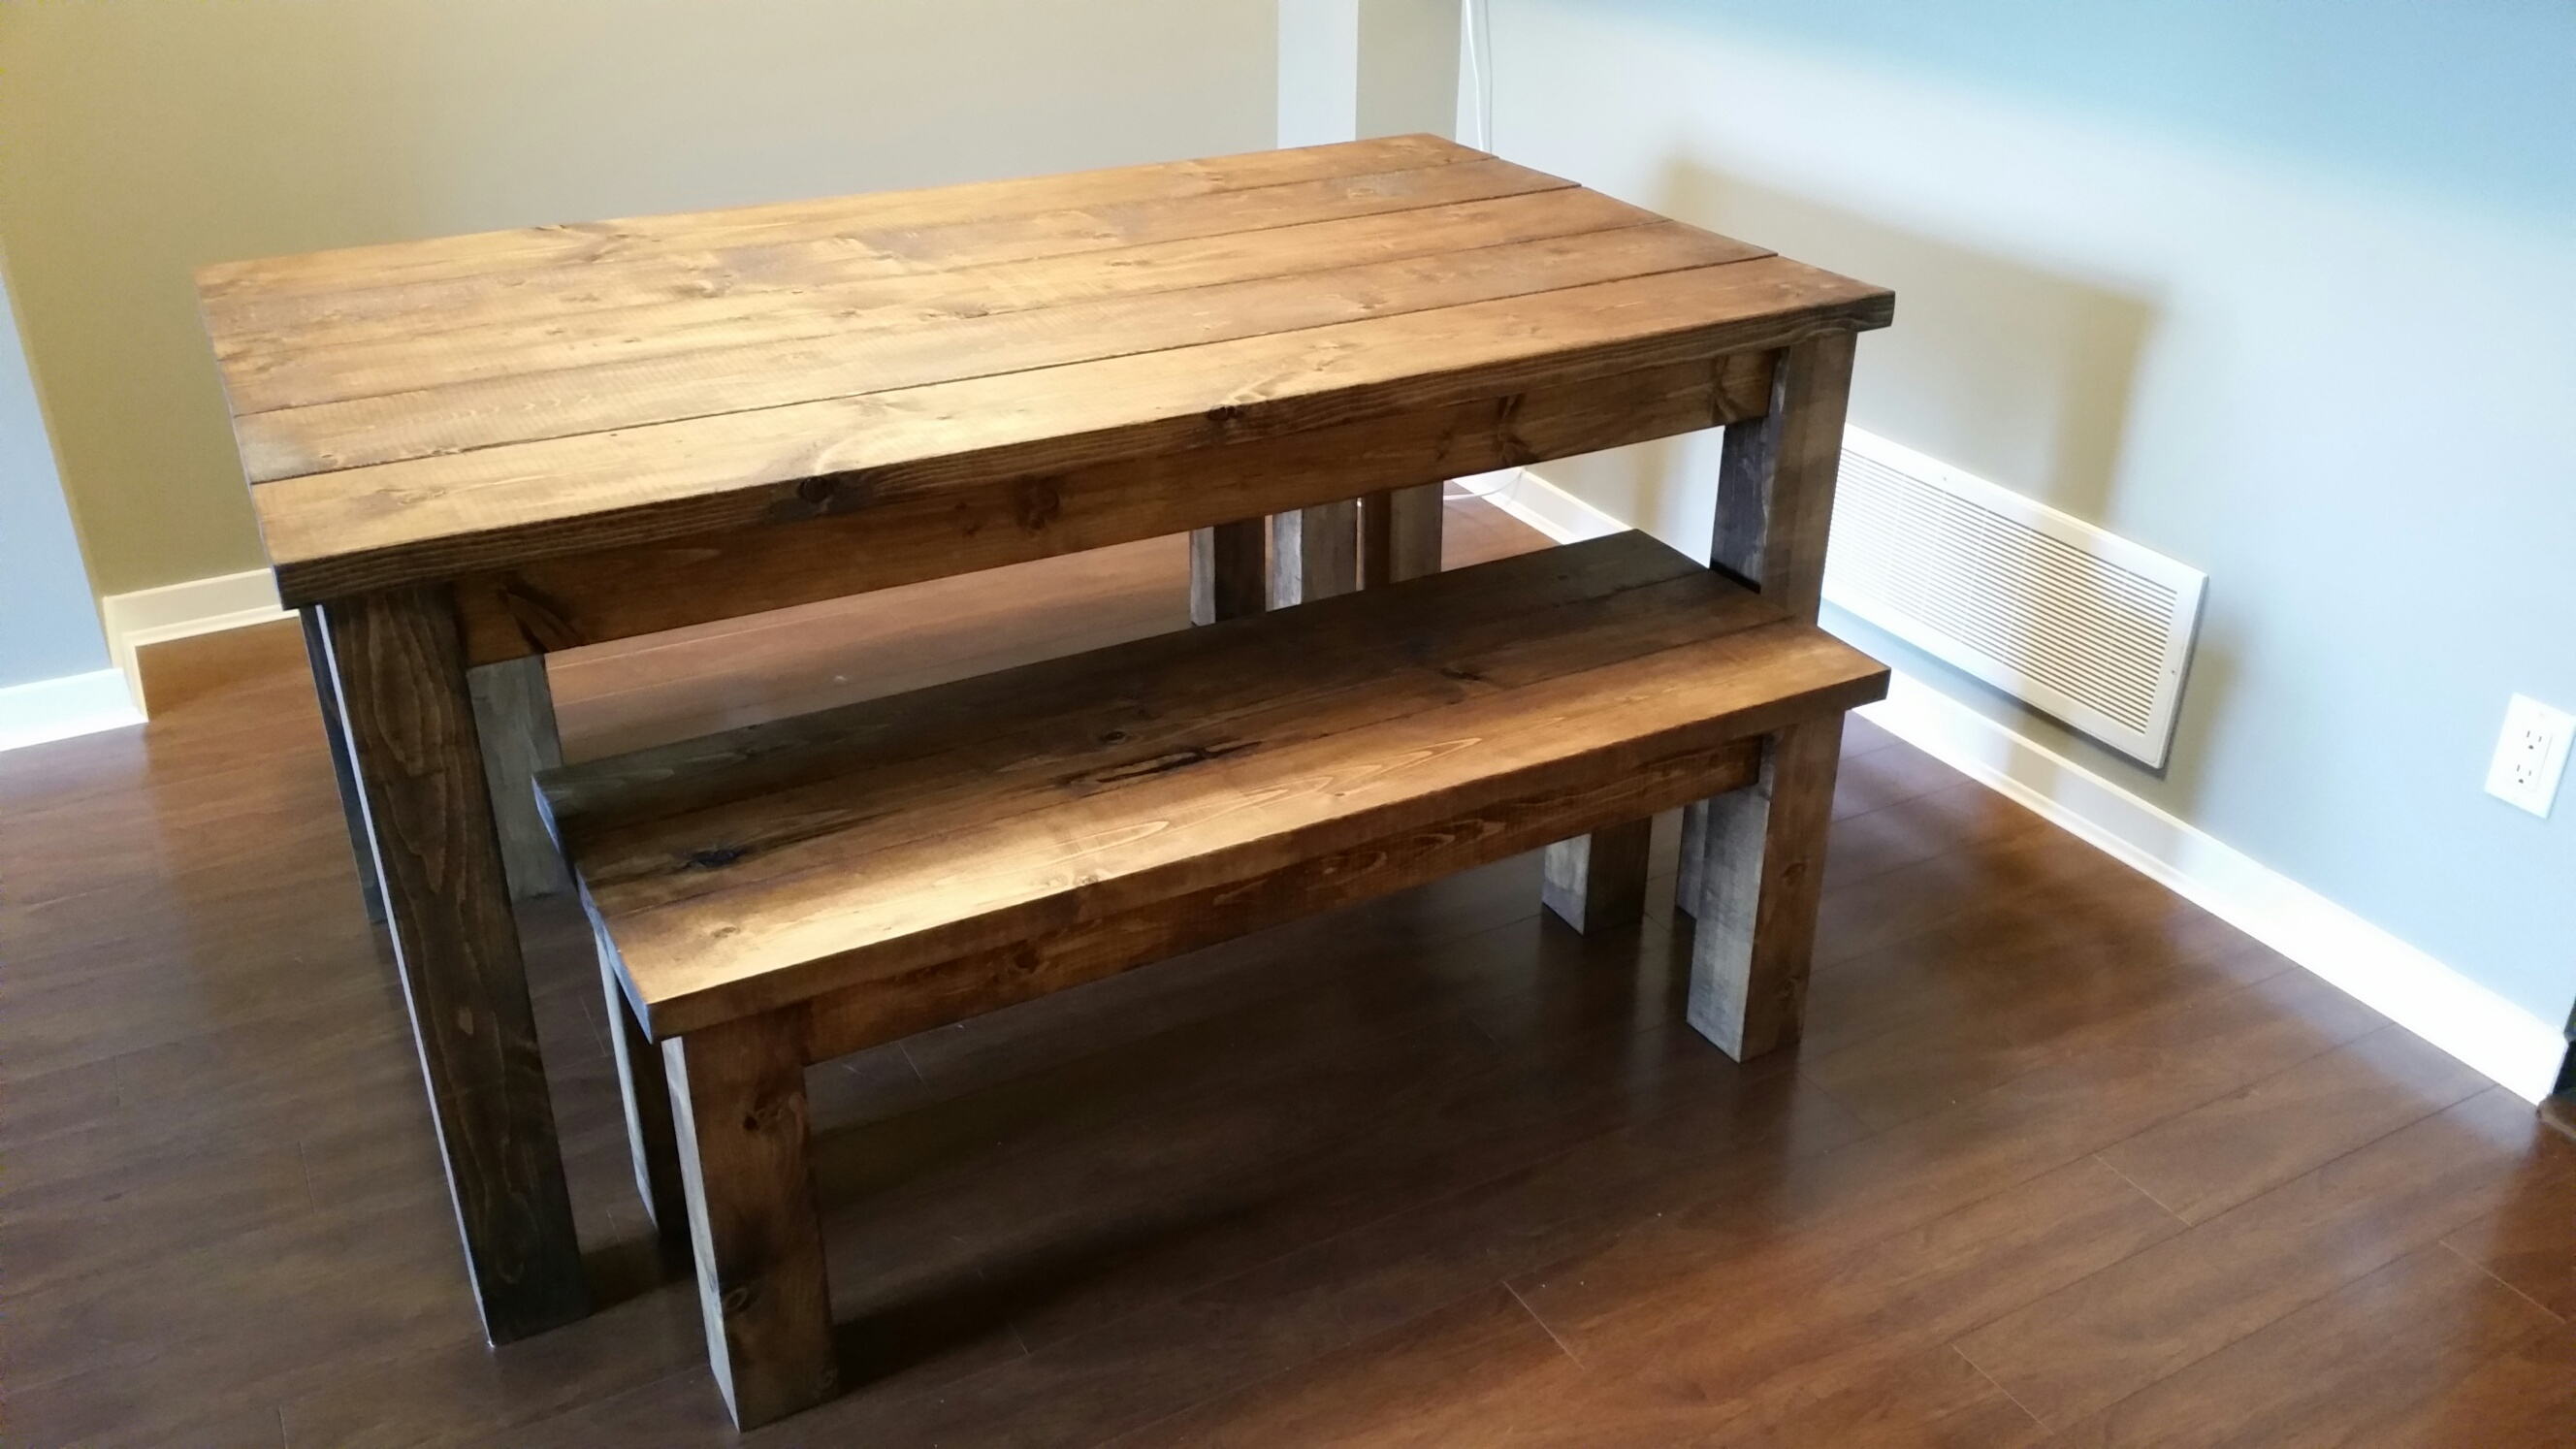 benches dining tables kitchen table with benches Provincial Pine Table and Bench set1